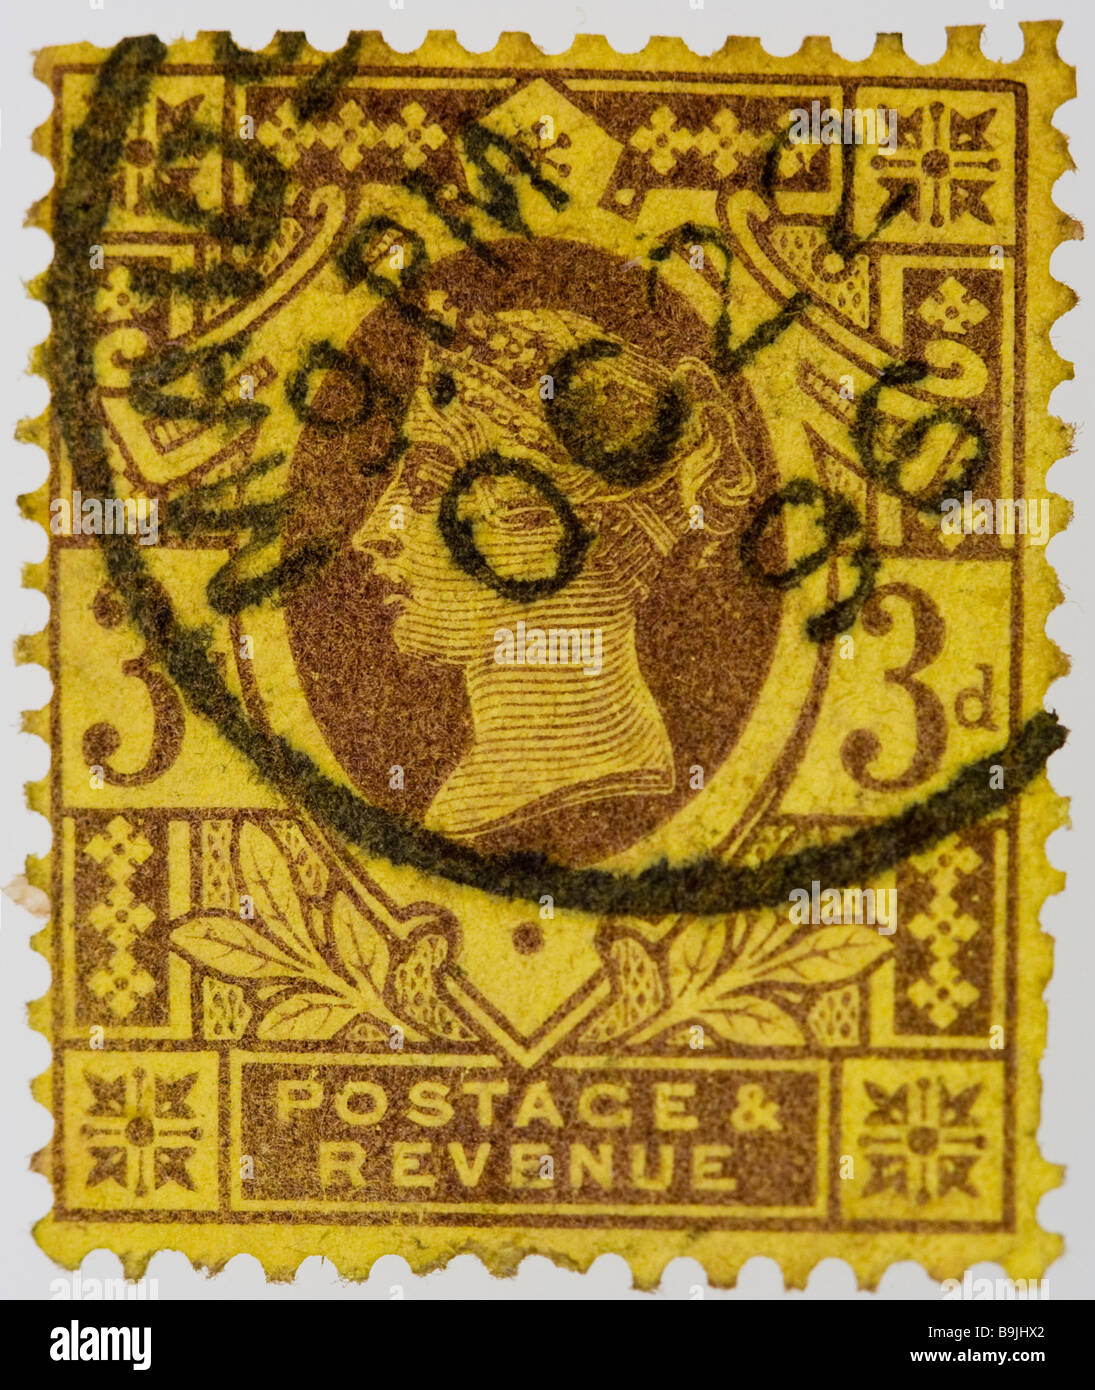 British Victorian 3d postage stamp 1887-1900 SG 202-204, deep yellow, used, franked - Stock Image